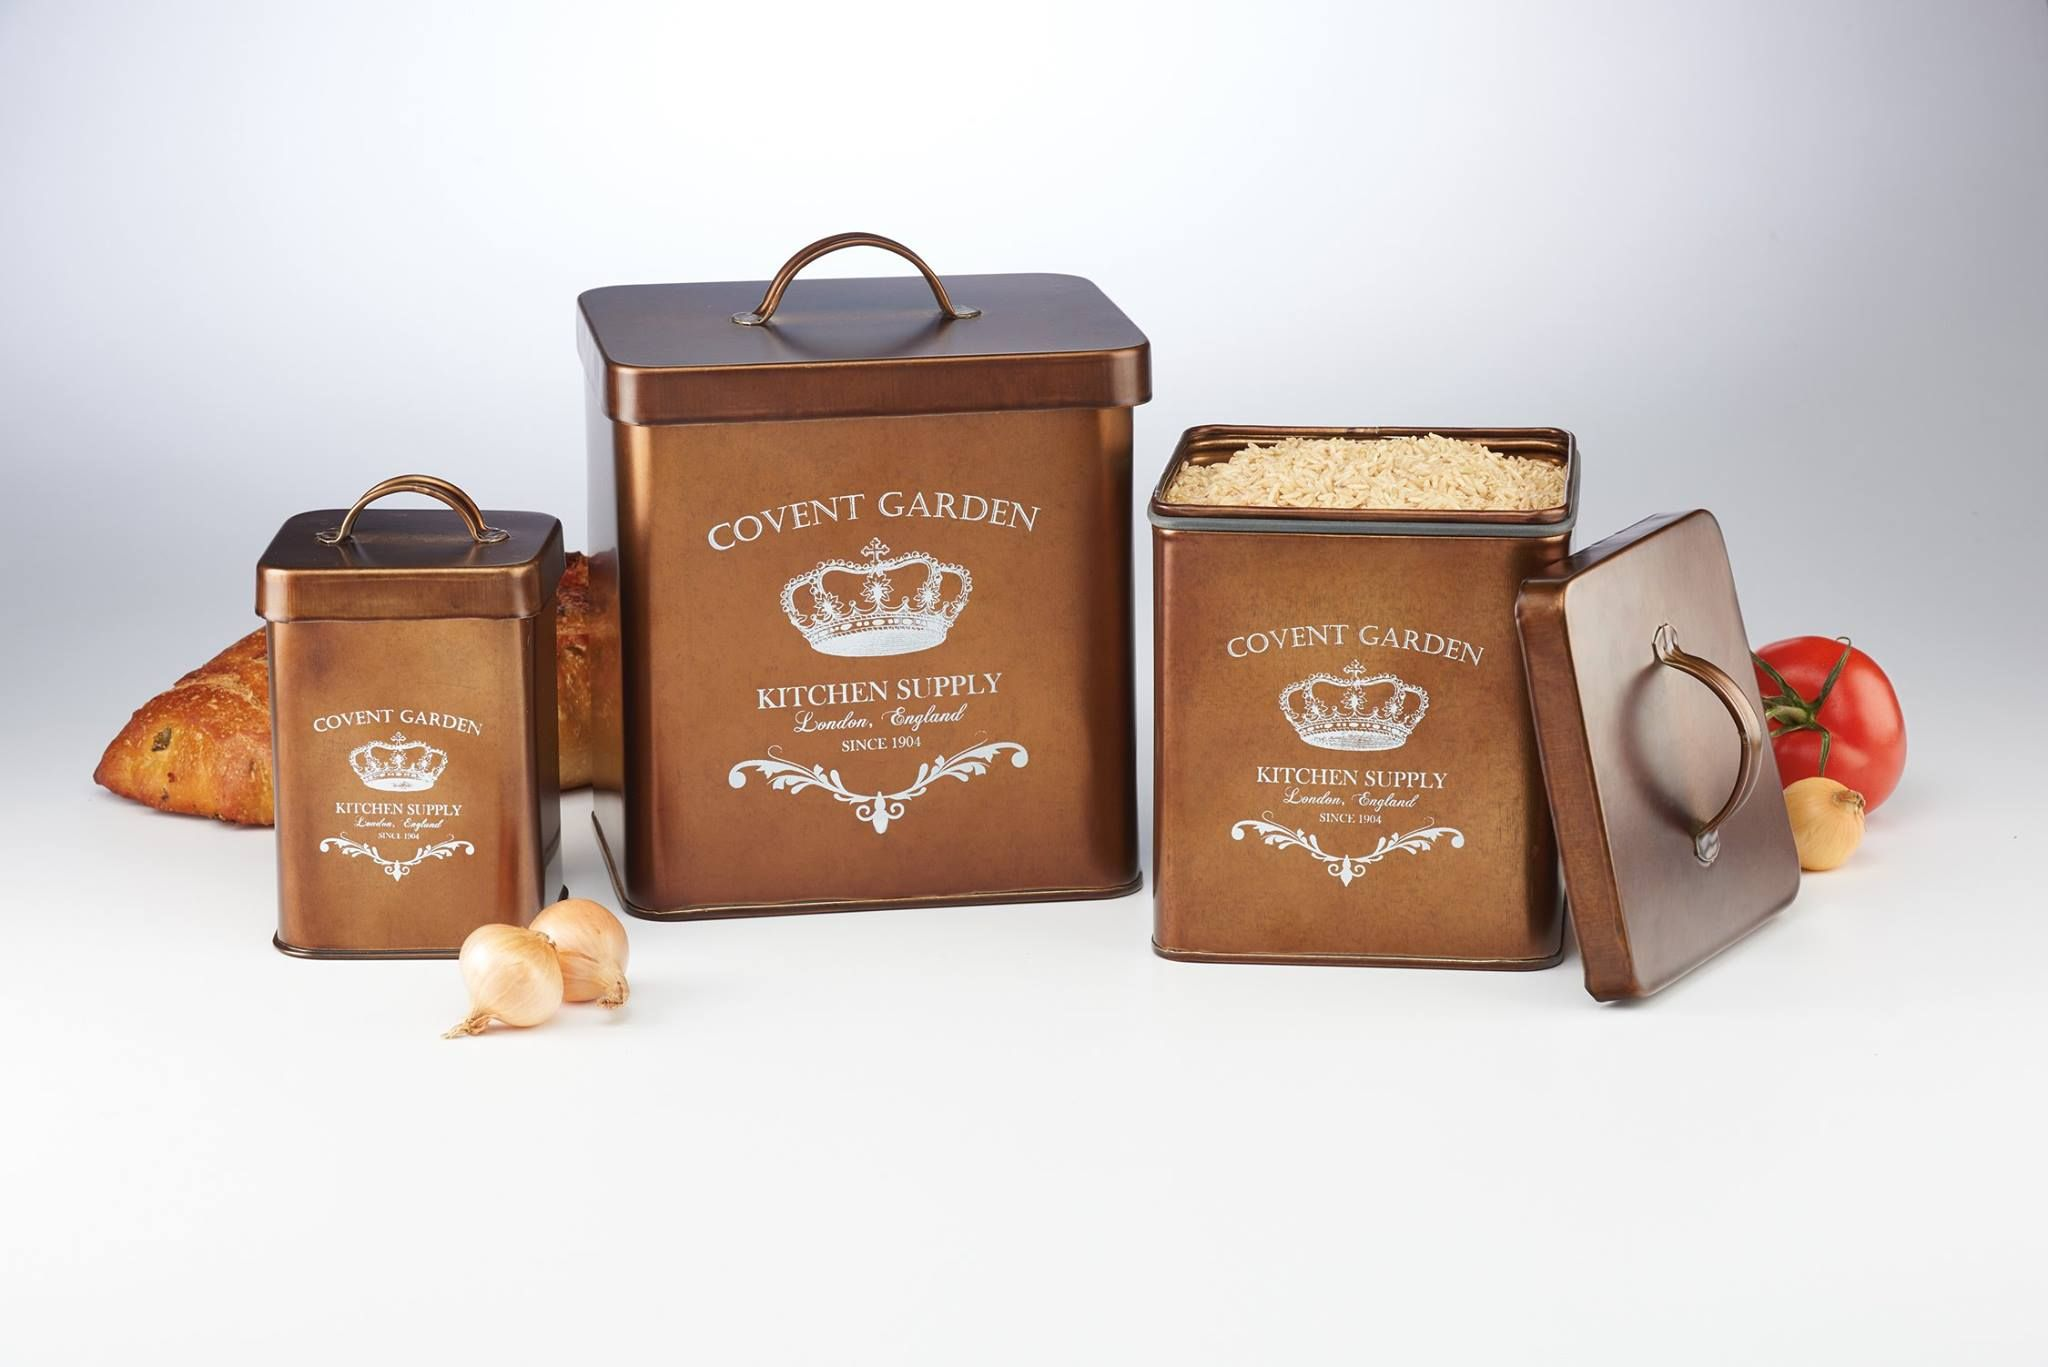 Covent garden collection copper canisters canister sets